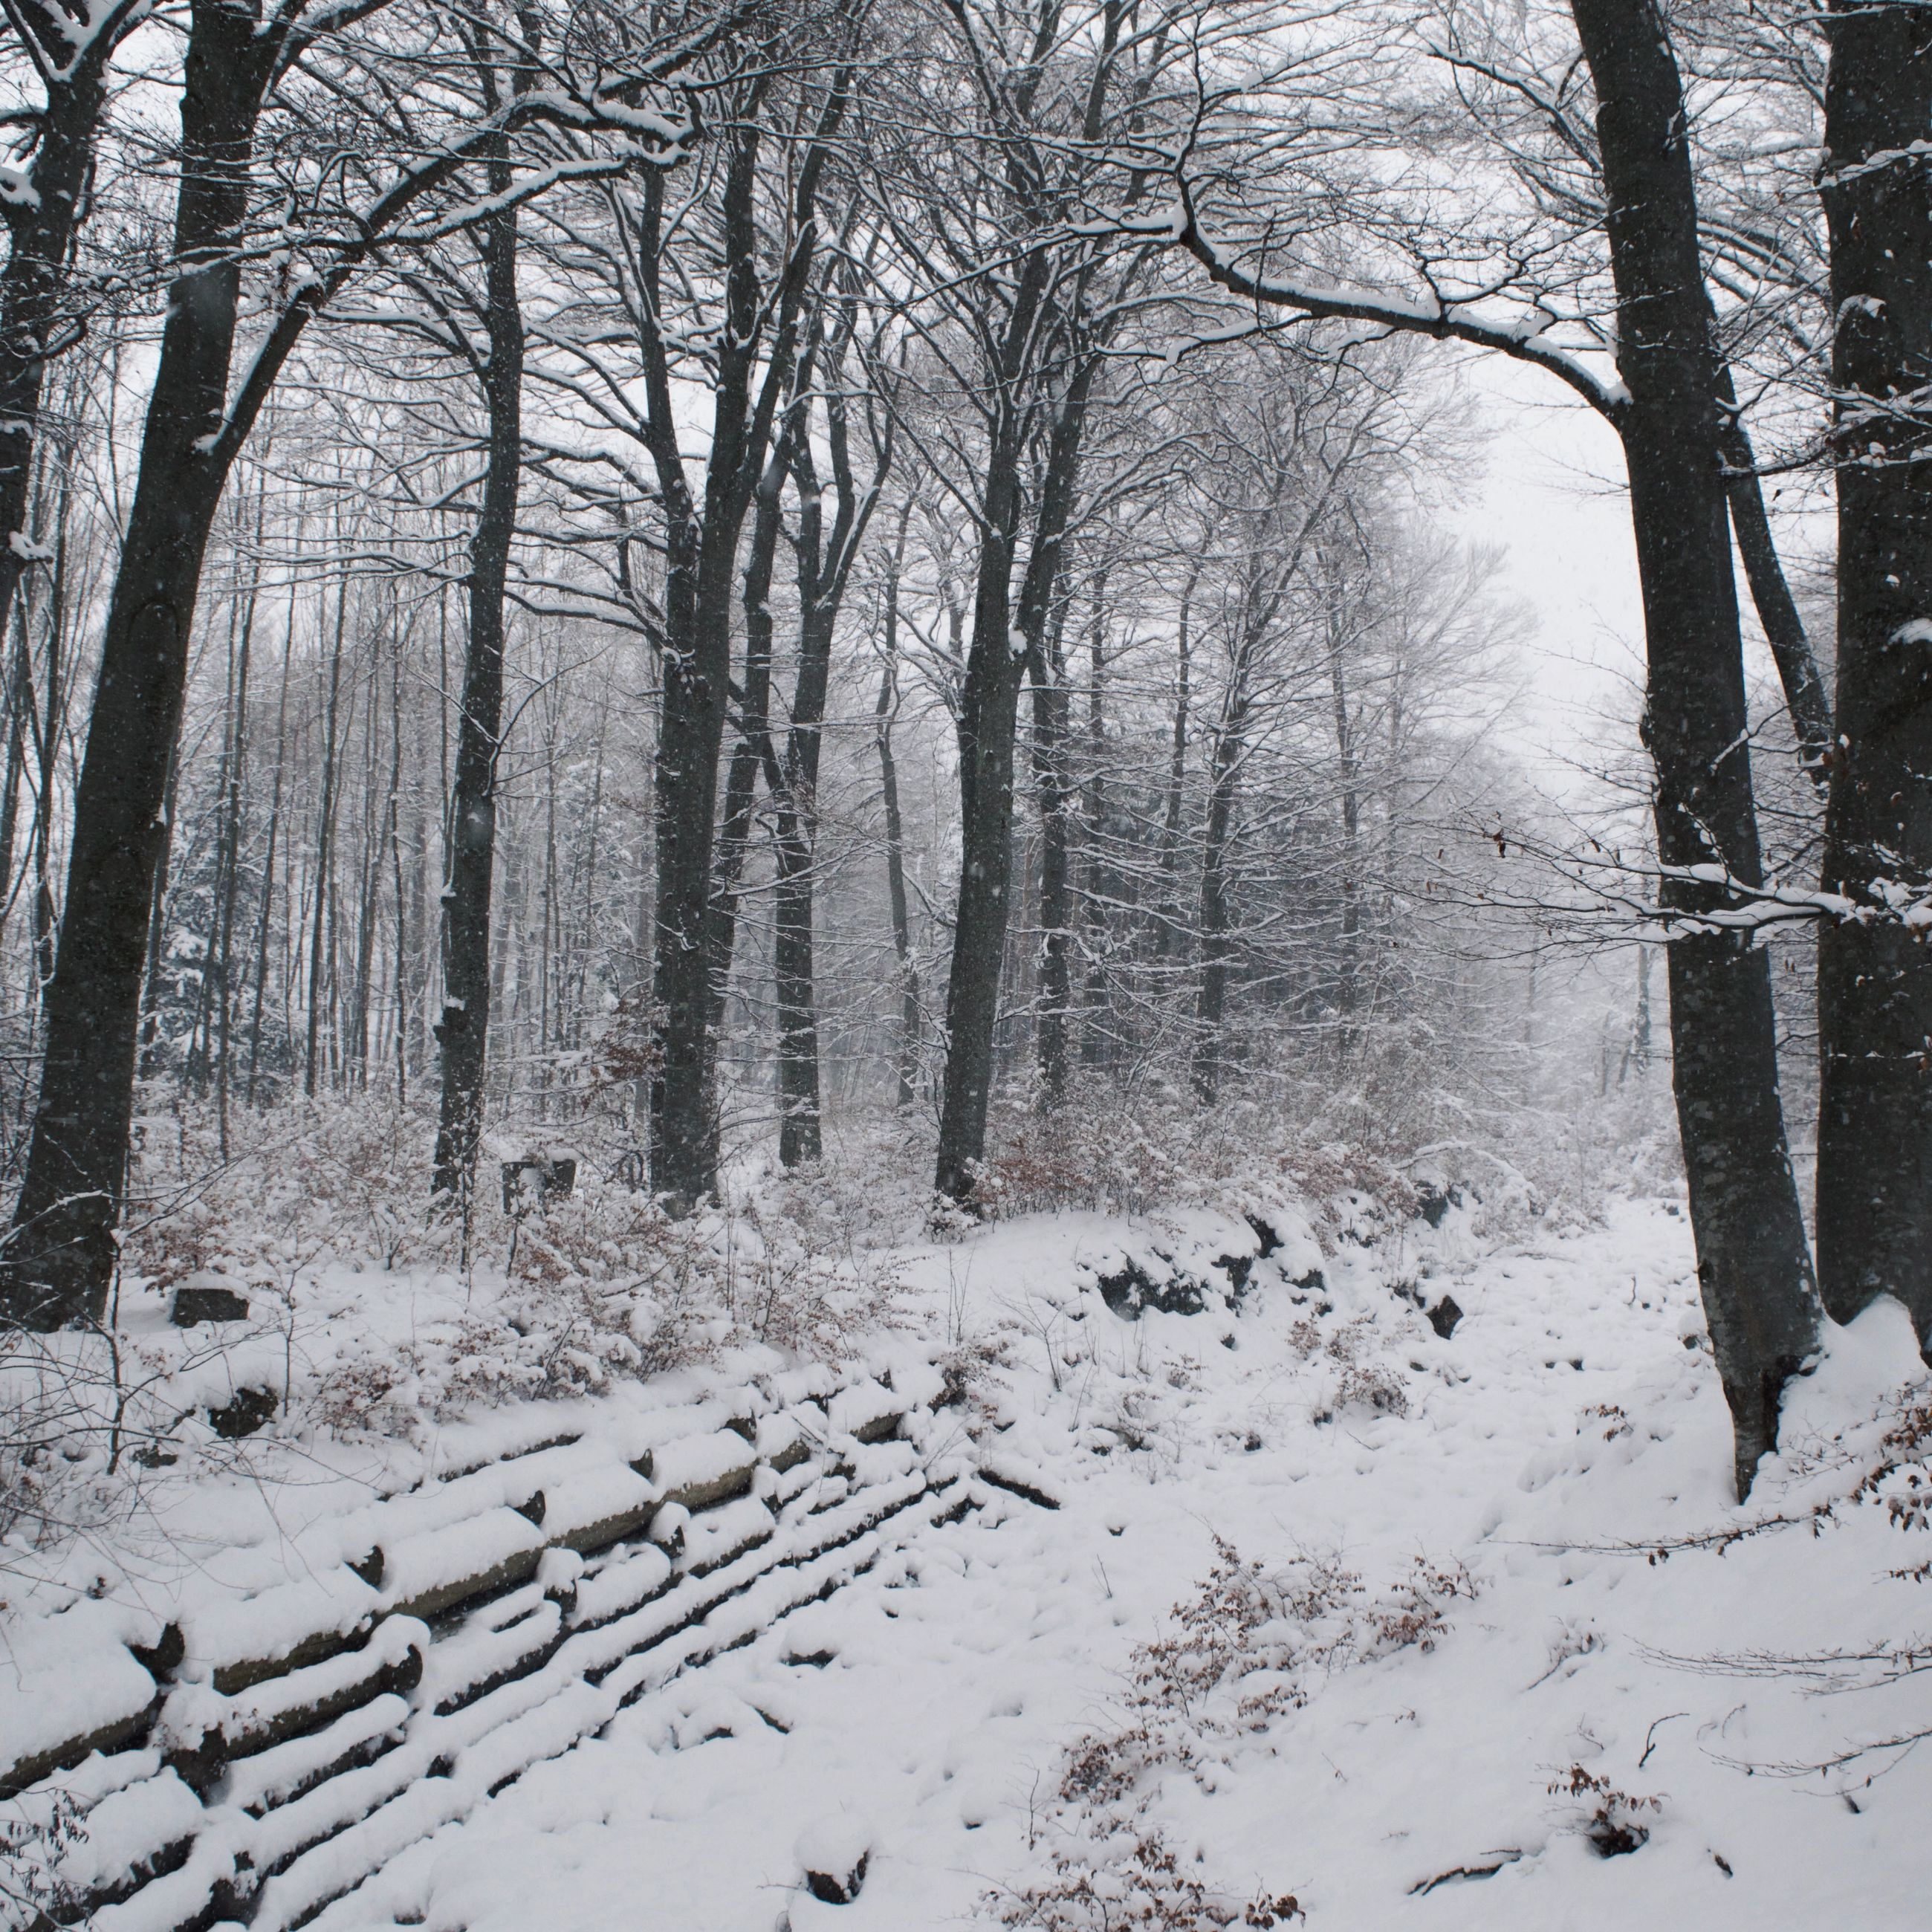 snow, winter, cold temperature, tree, season, tranquility, bare tree, tranquil scene, forest, weather, nature, covering, beauty in nature, woodland, scenics, landscape, tree trunk, frozen, branch, non-urban scene